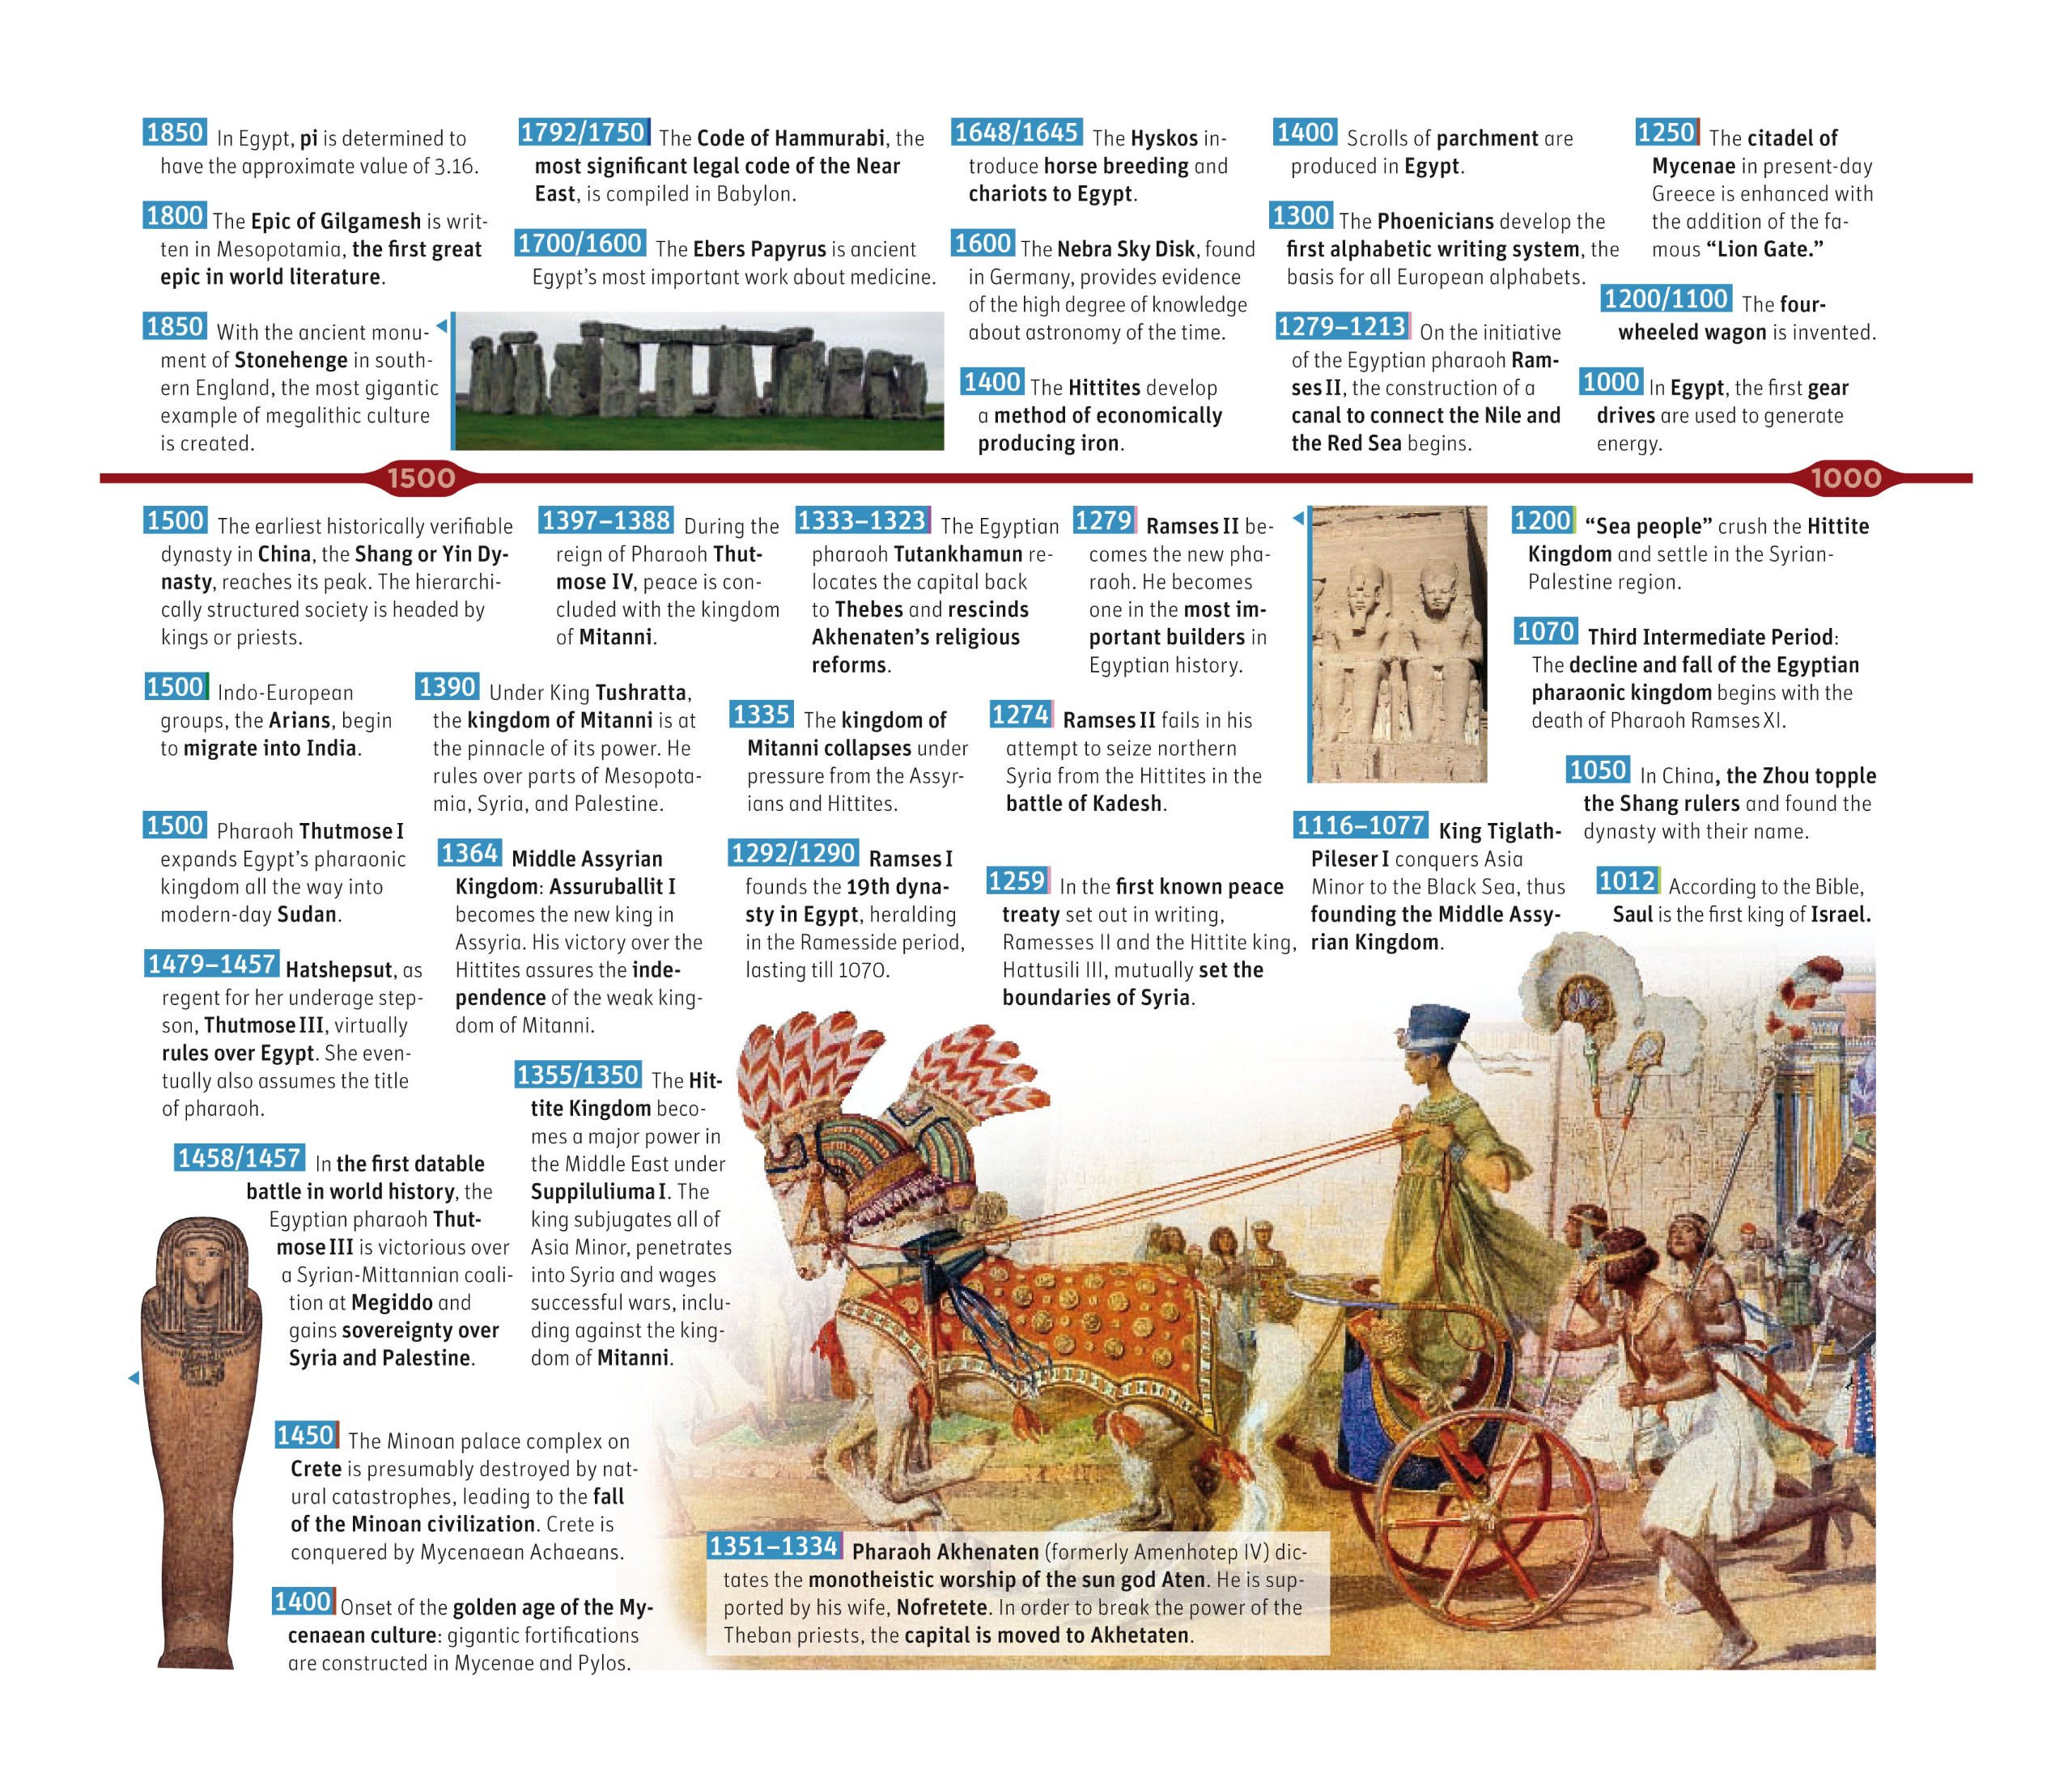 the ultimate timeline of world history with 20 lavish fold out